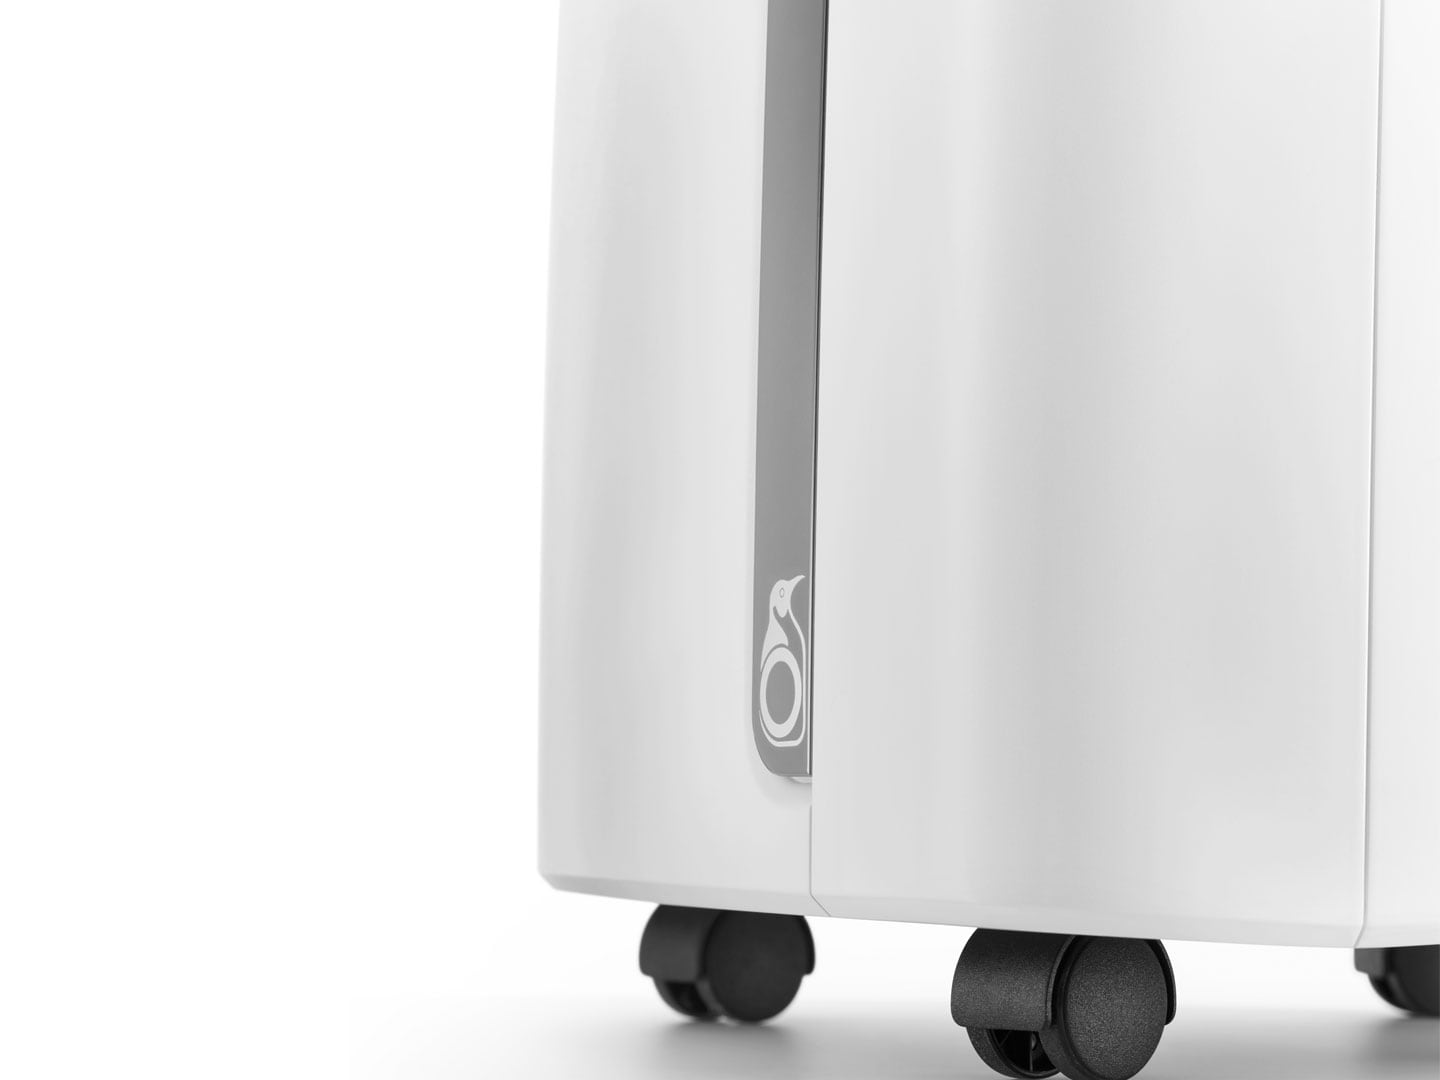 Pinguino Portable Air Conditioner - PAC EX270LN-3AWH